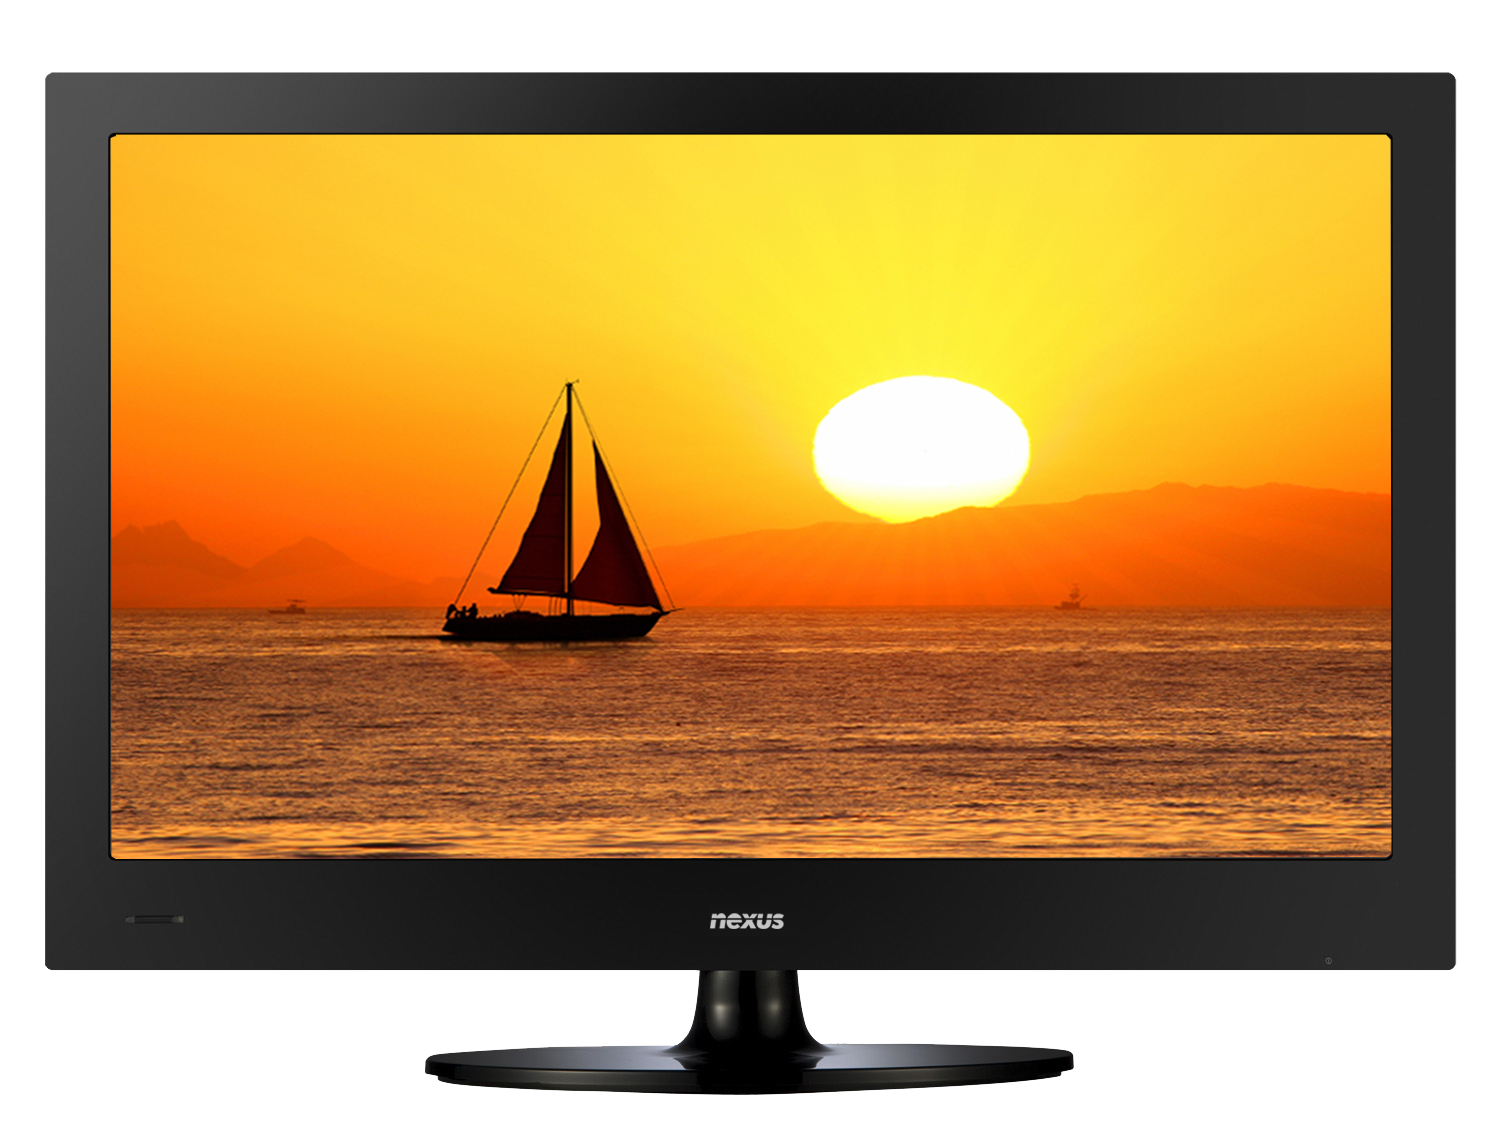 Sanyo Led Tv 32 Inch Hd Png Download In 2021 Led Tv Sanyo Led